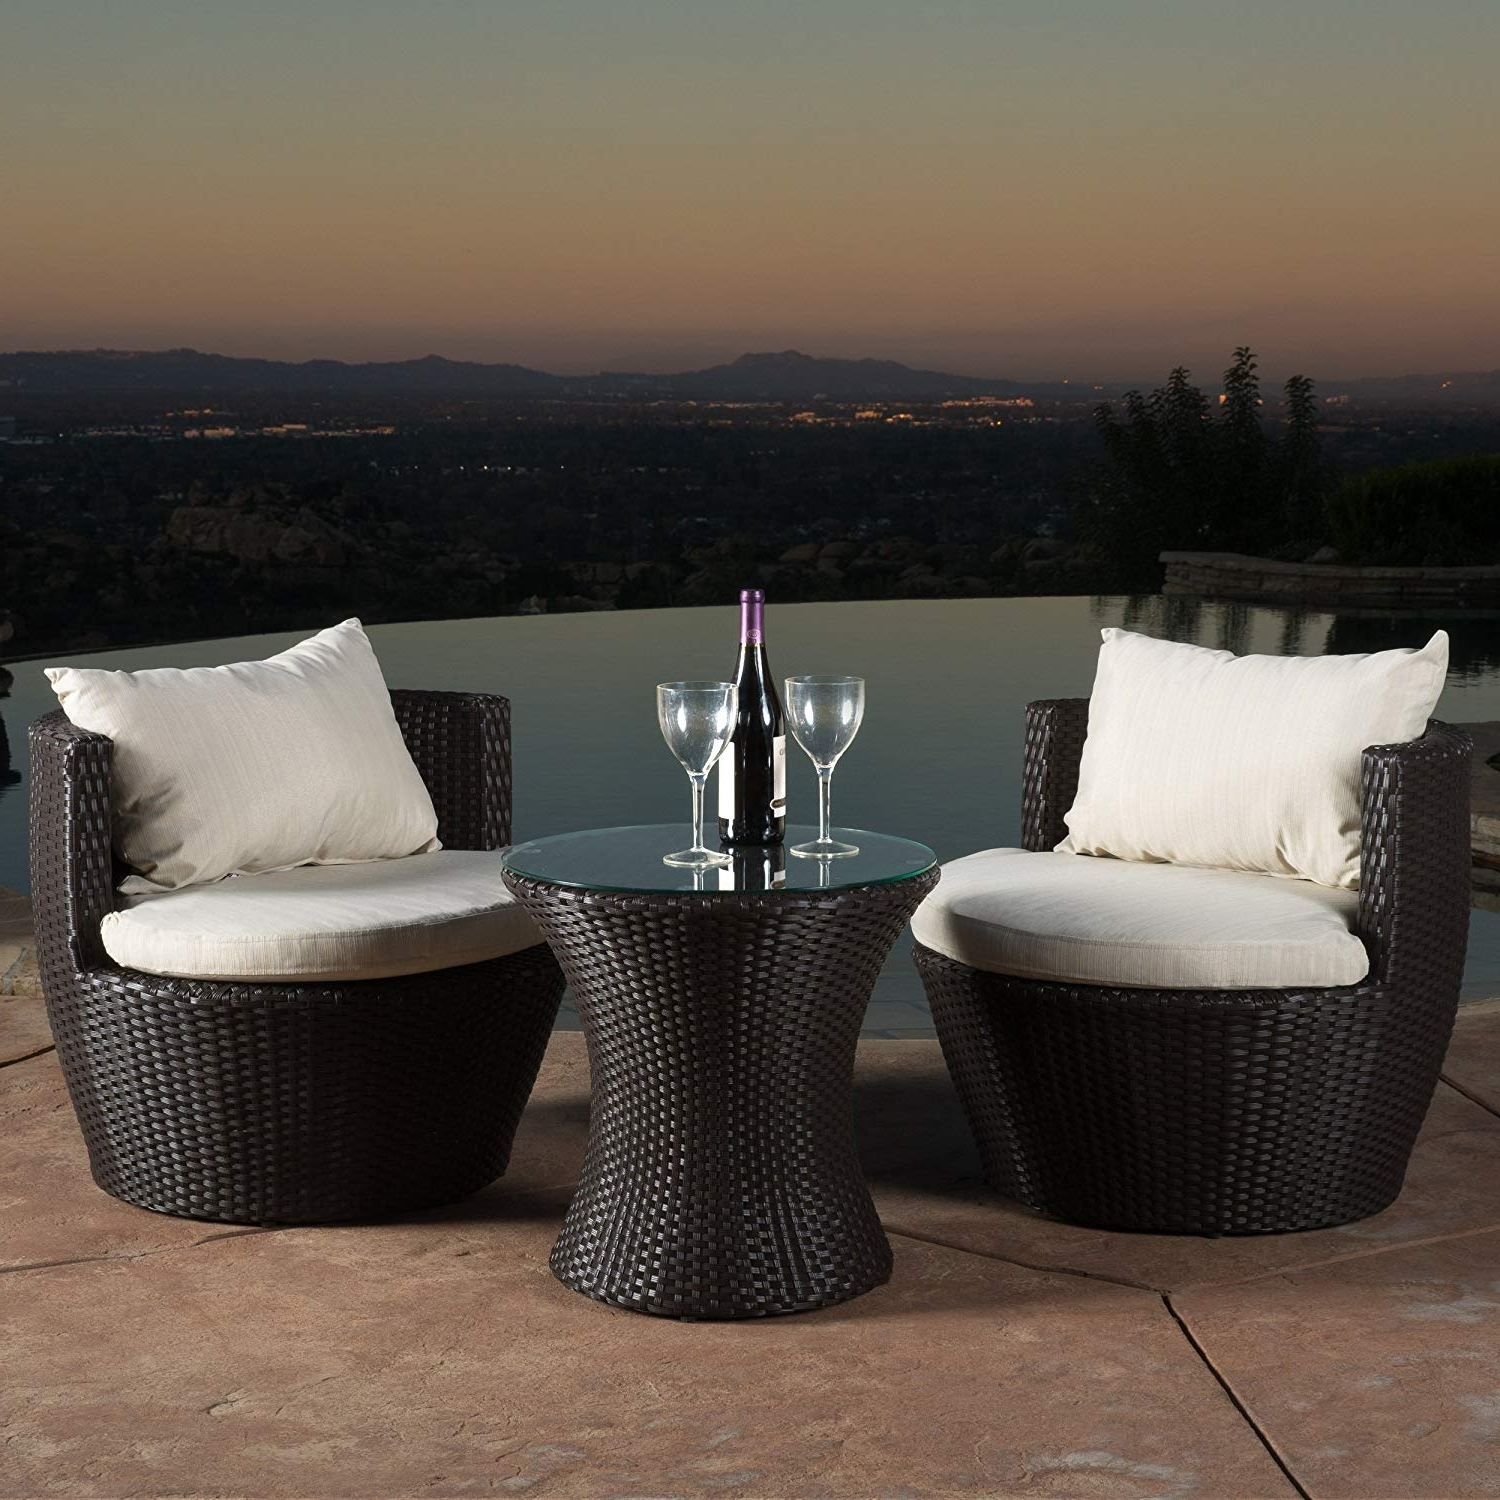 Widely Used Resin Wicker Patio Conversation Sets In Christopher Knight Home 296323 Kyoto 3 Piece Chat Set (View 15 of 15)